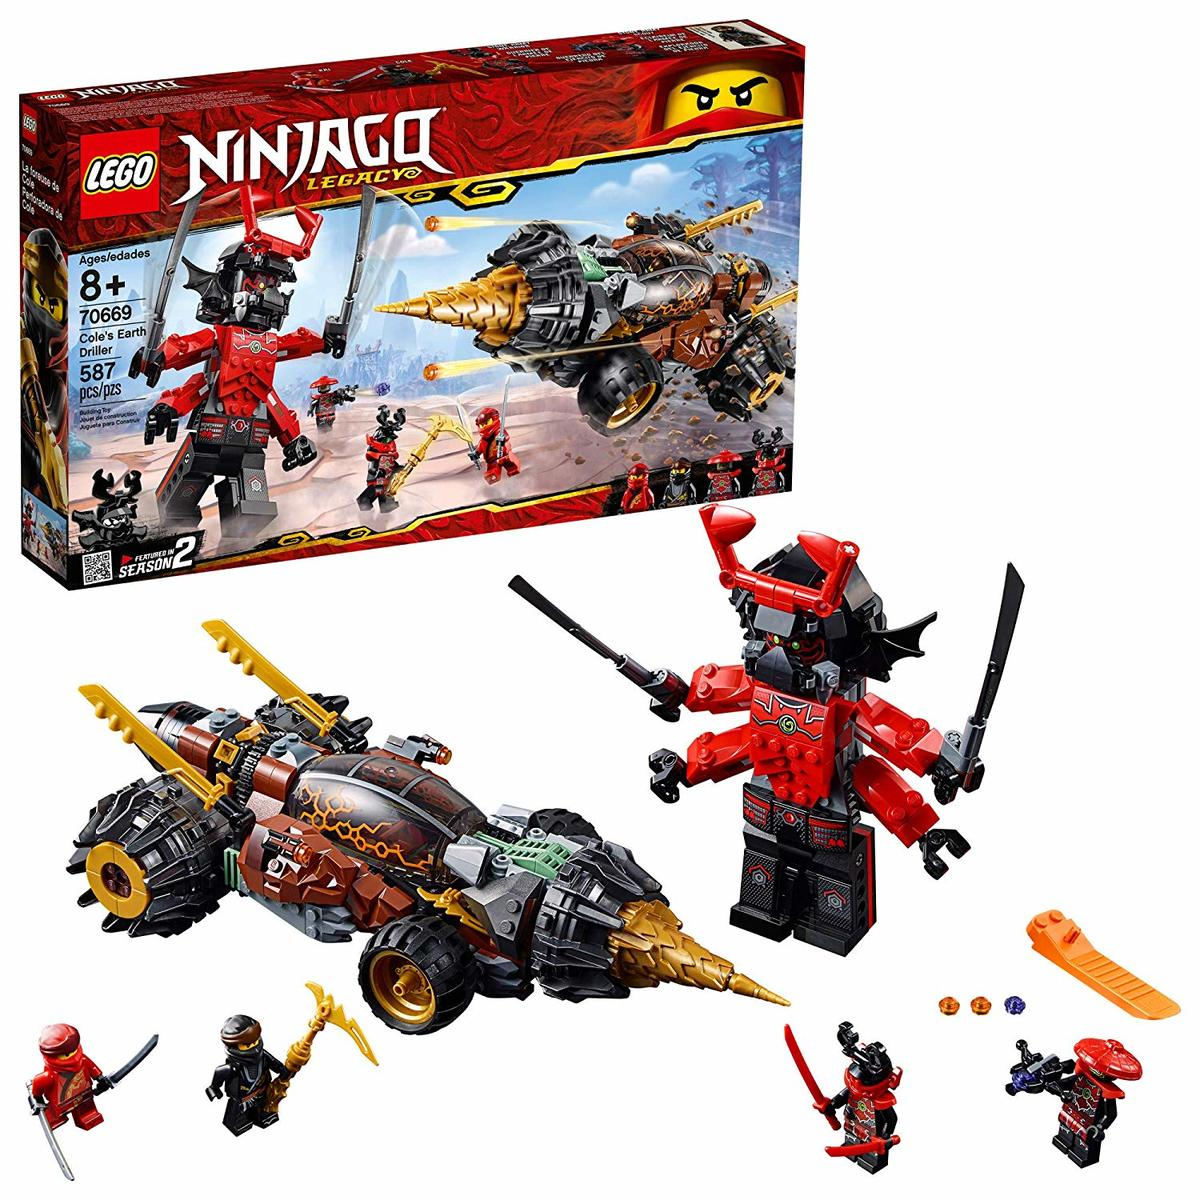 70669 Ninjago Cole's Earth Driller